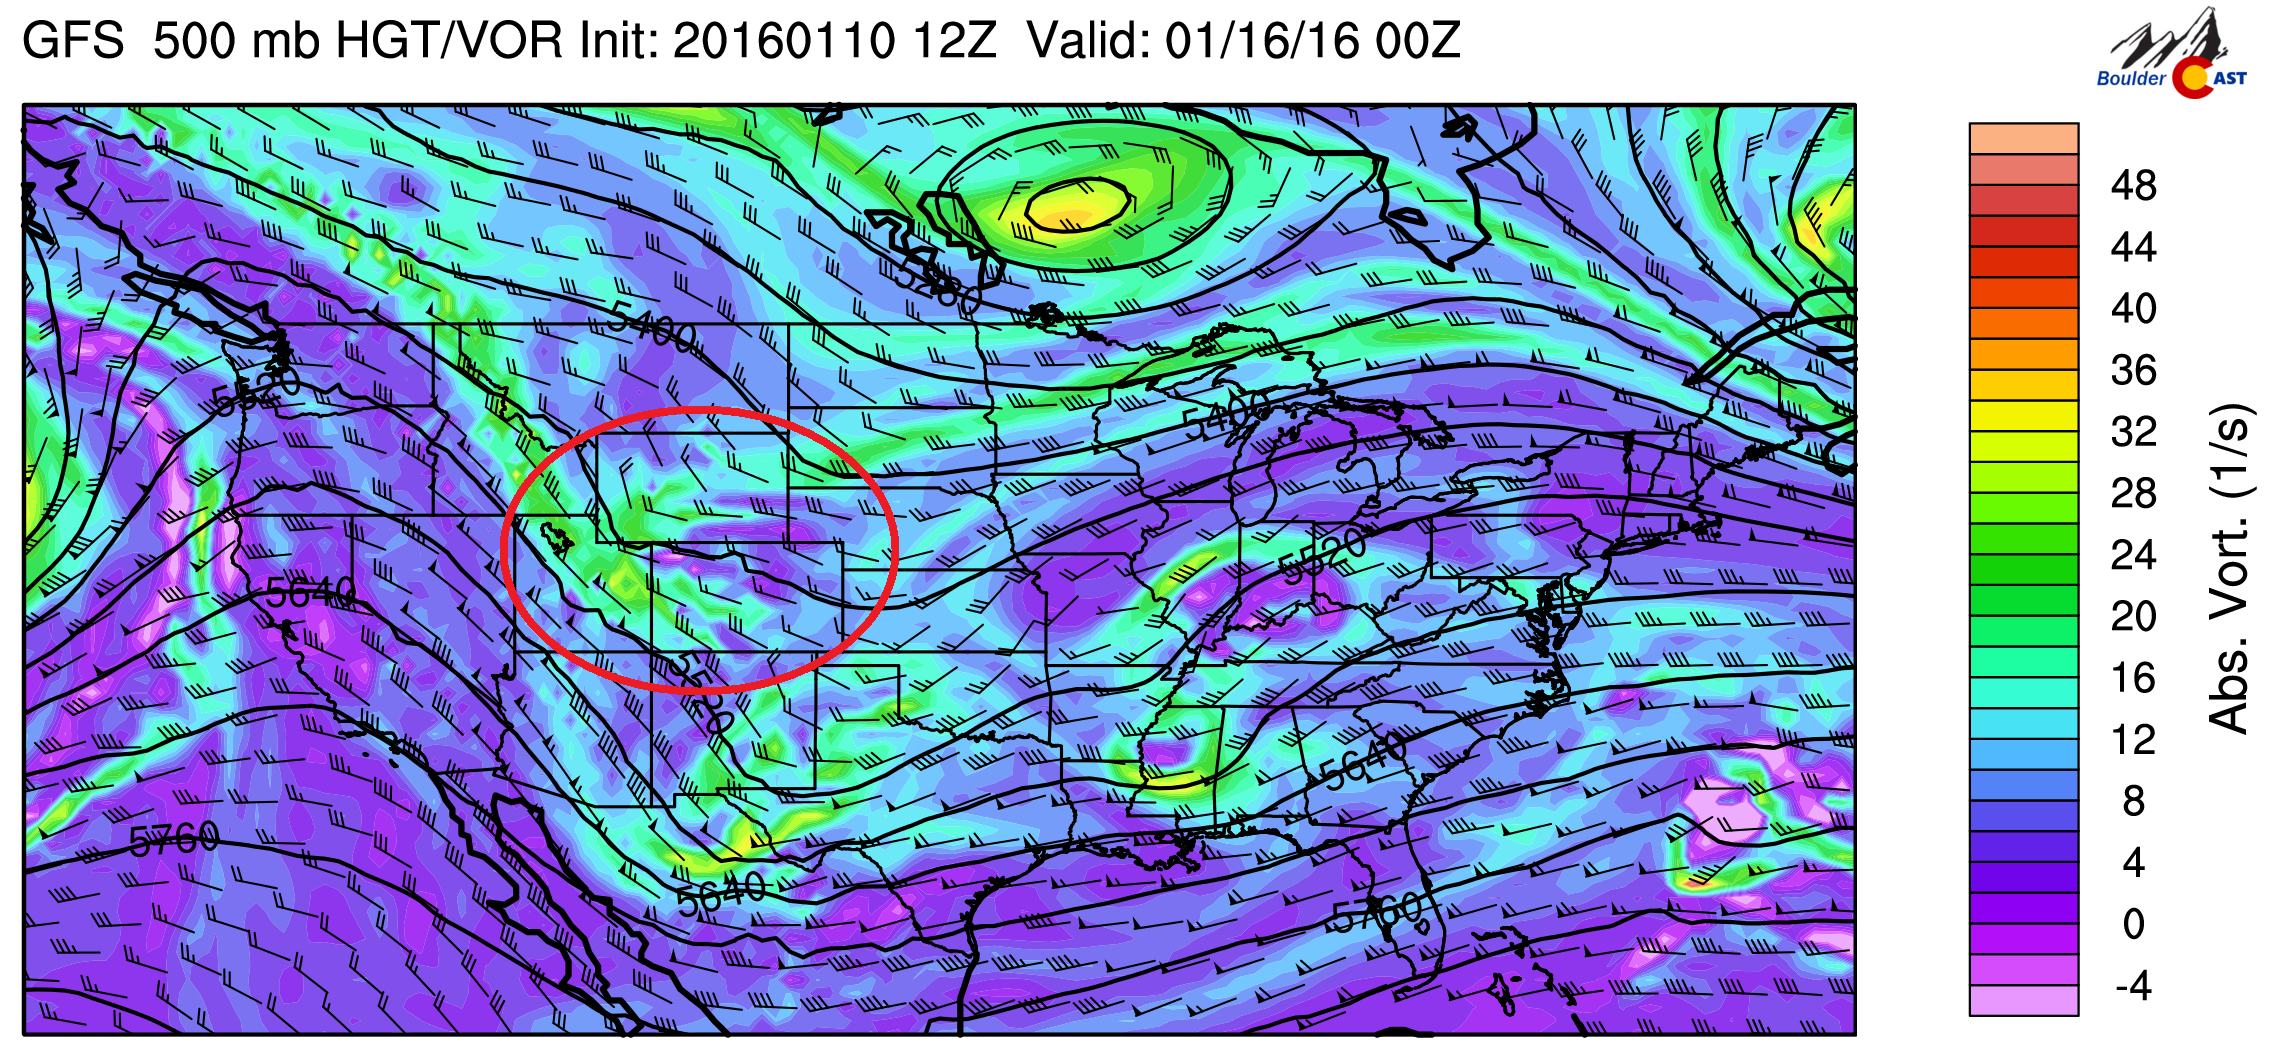 GFS 500 mb vorticity for Friday night